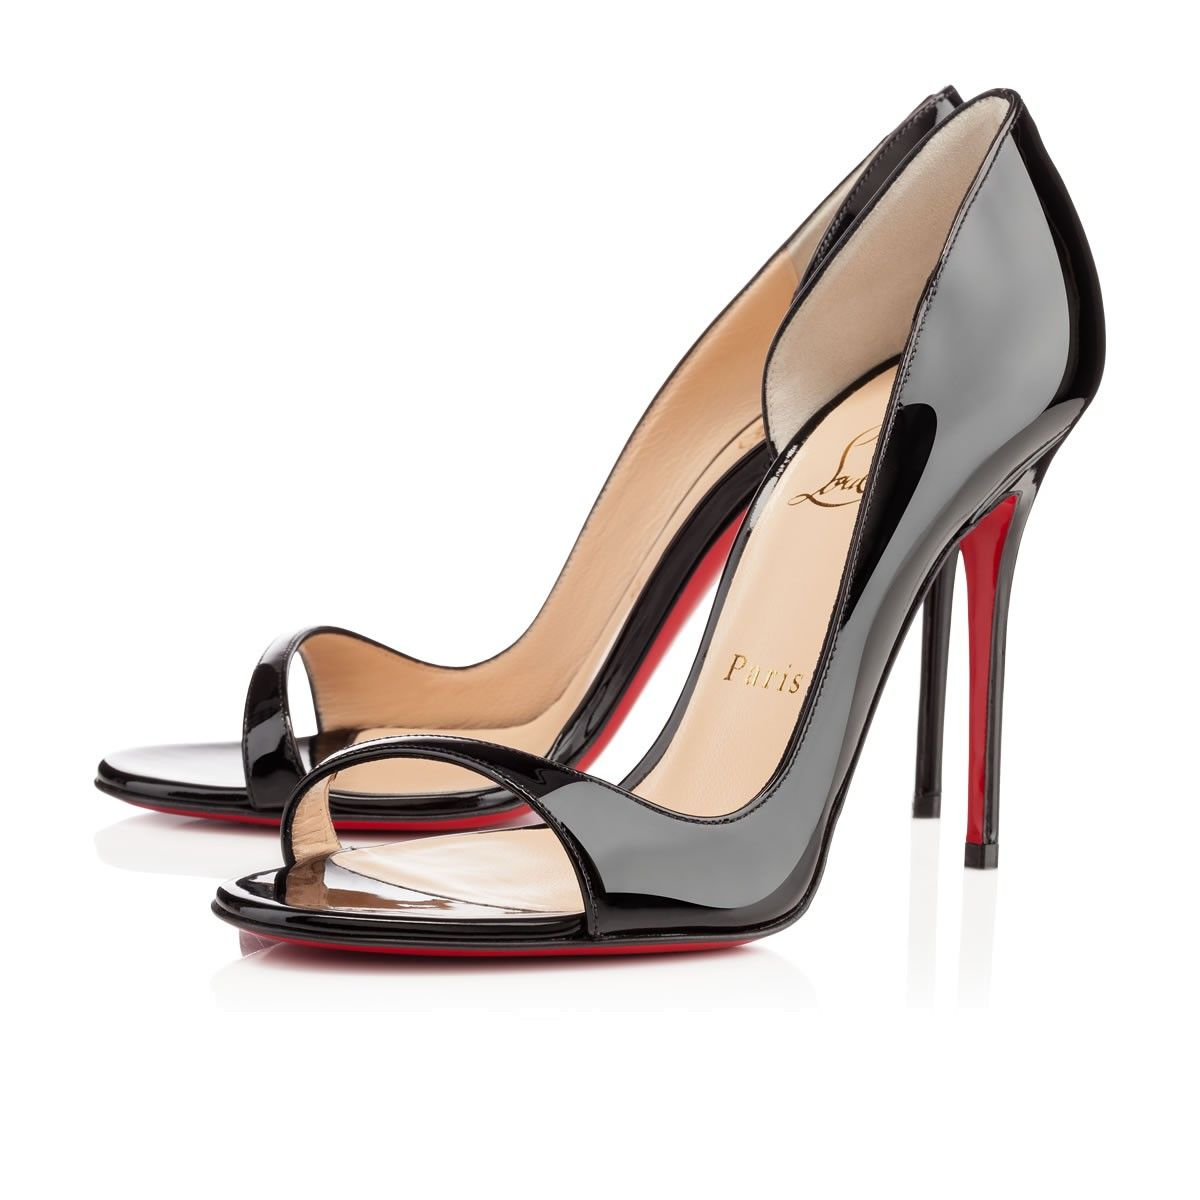 stores that sale christian louboutin shoes